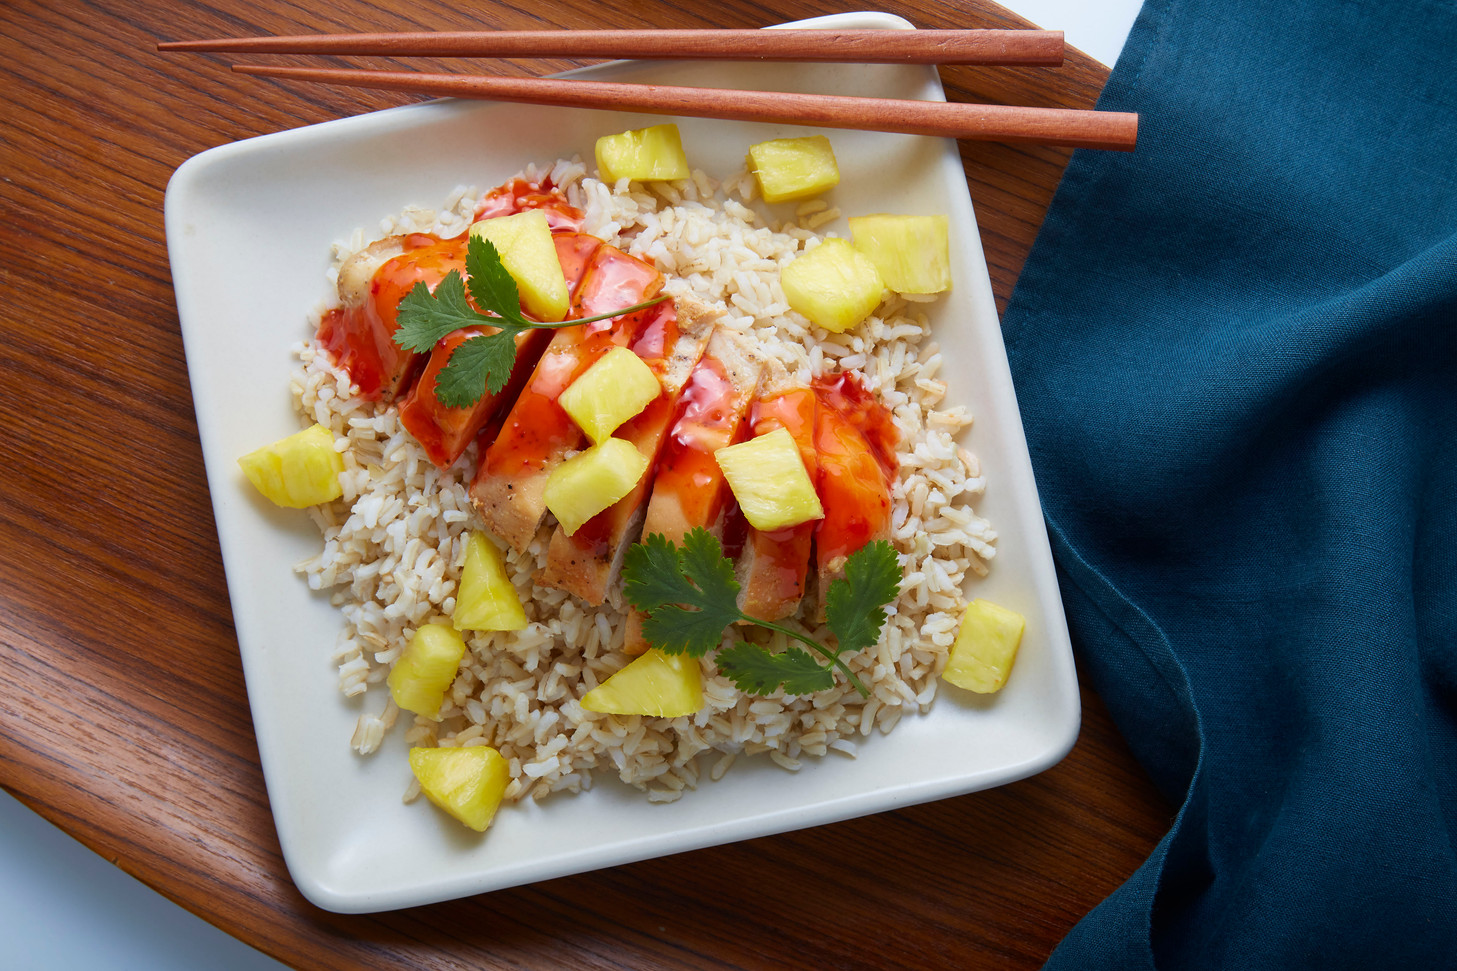 Sweet & sour chicken over rice